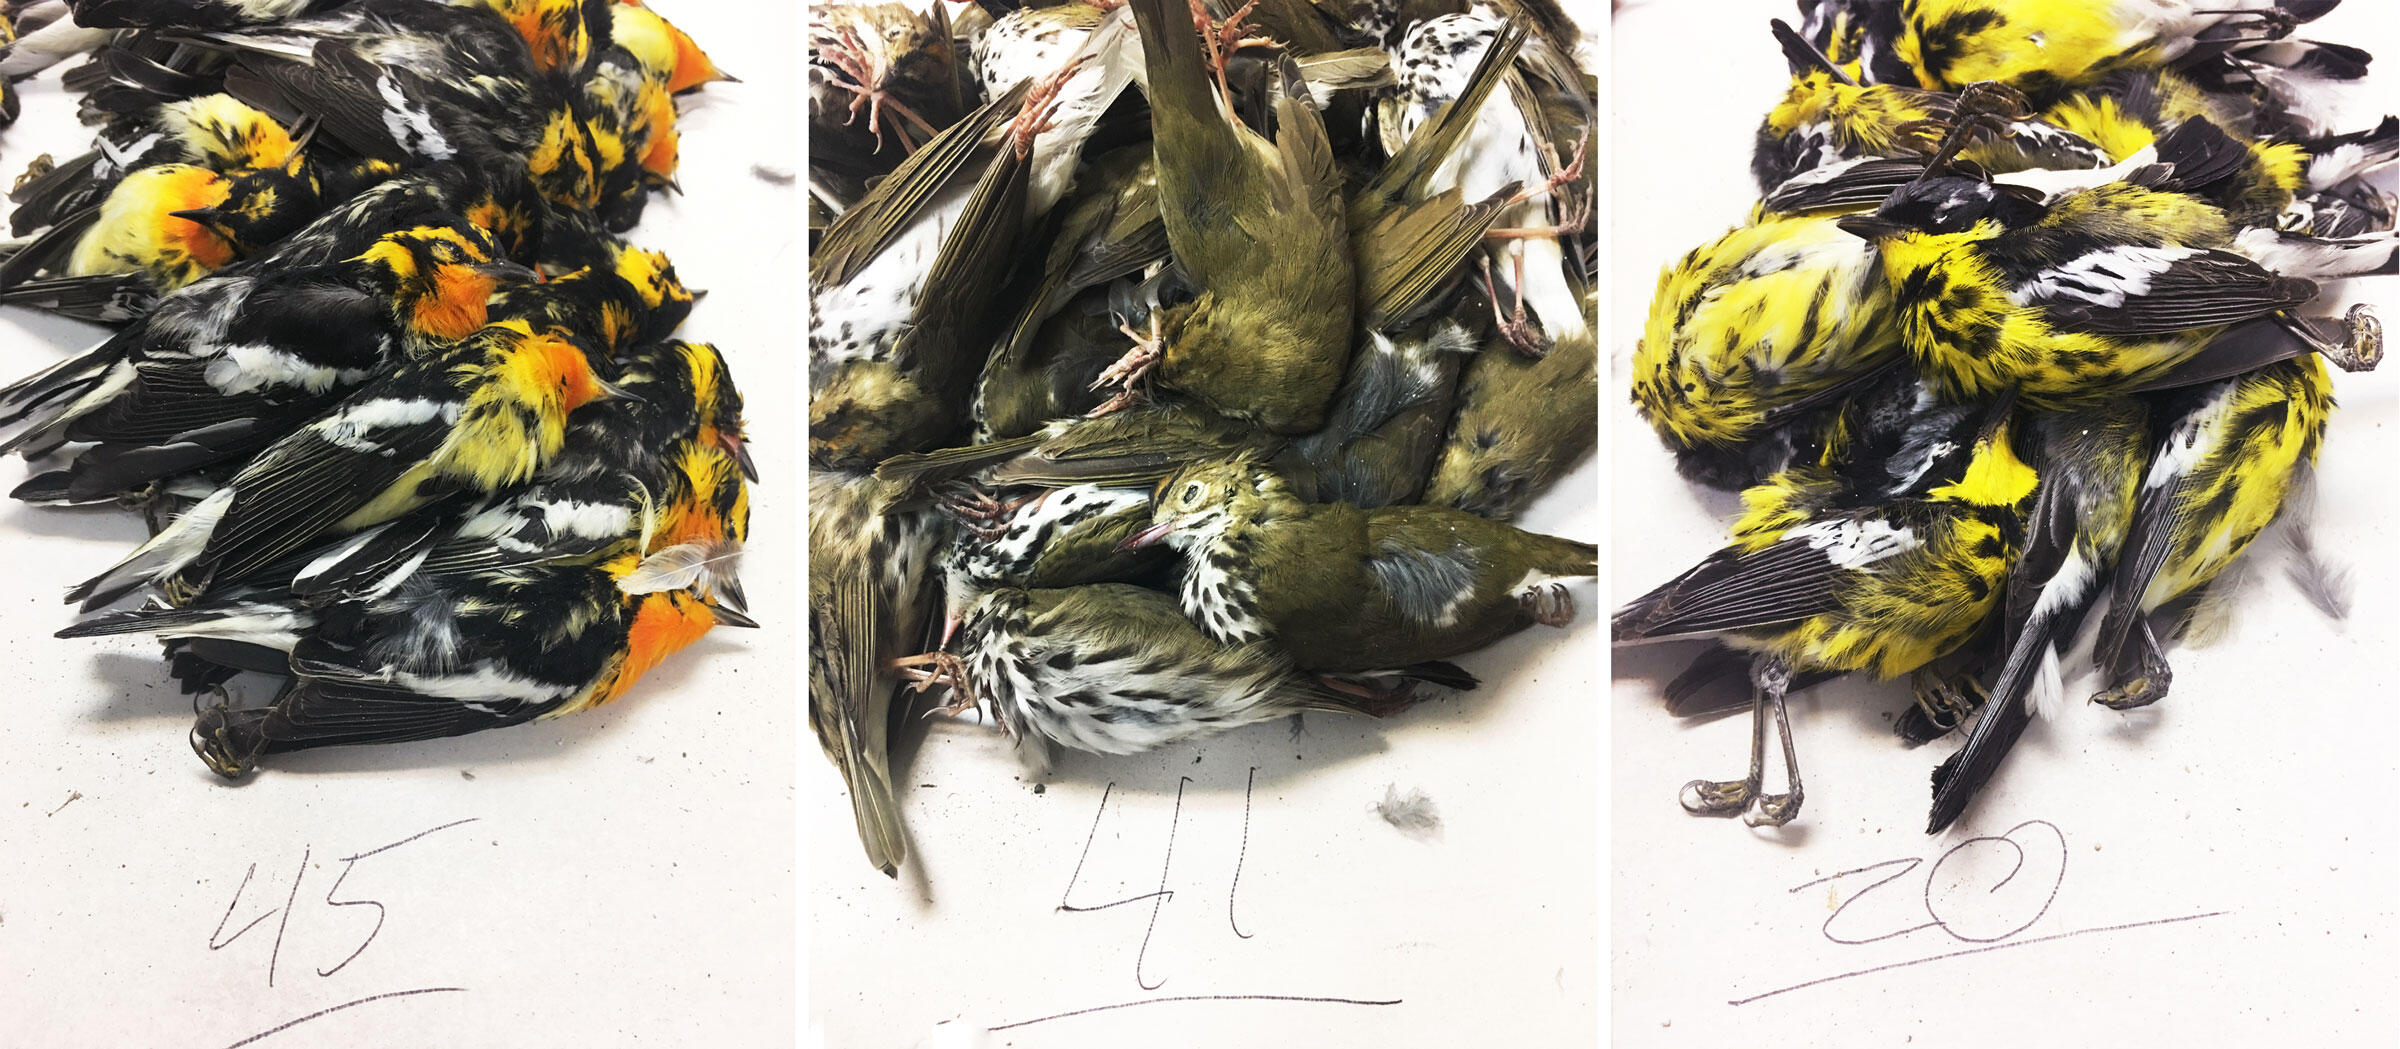 Nearly 400 Migratory Birds Were Killed by One Texas Building